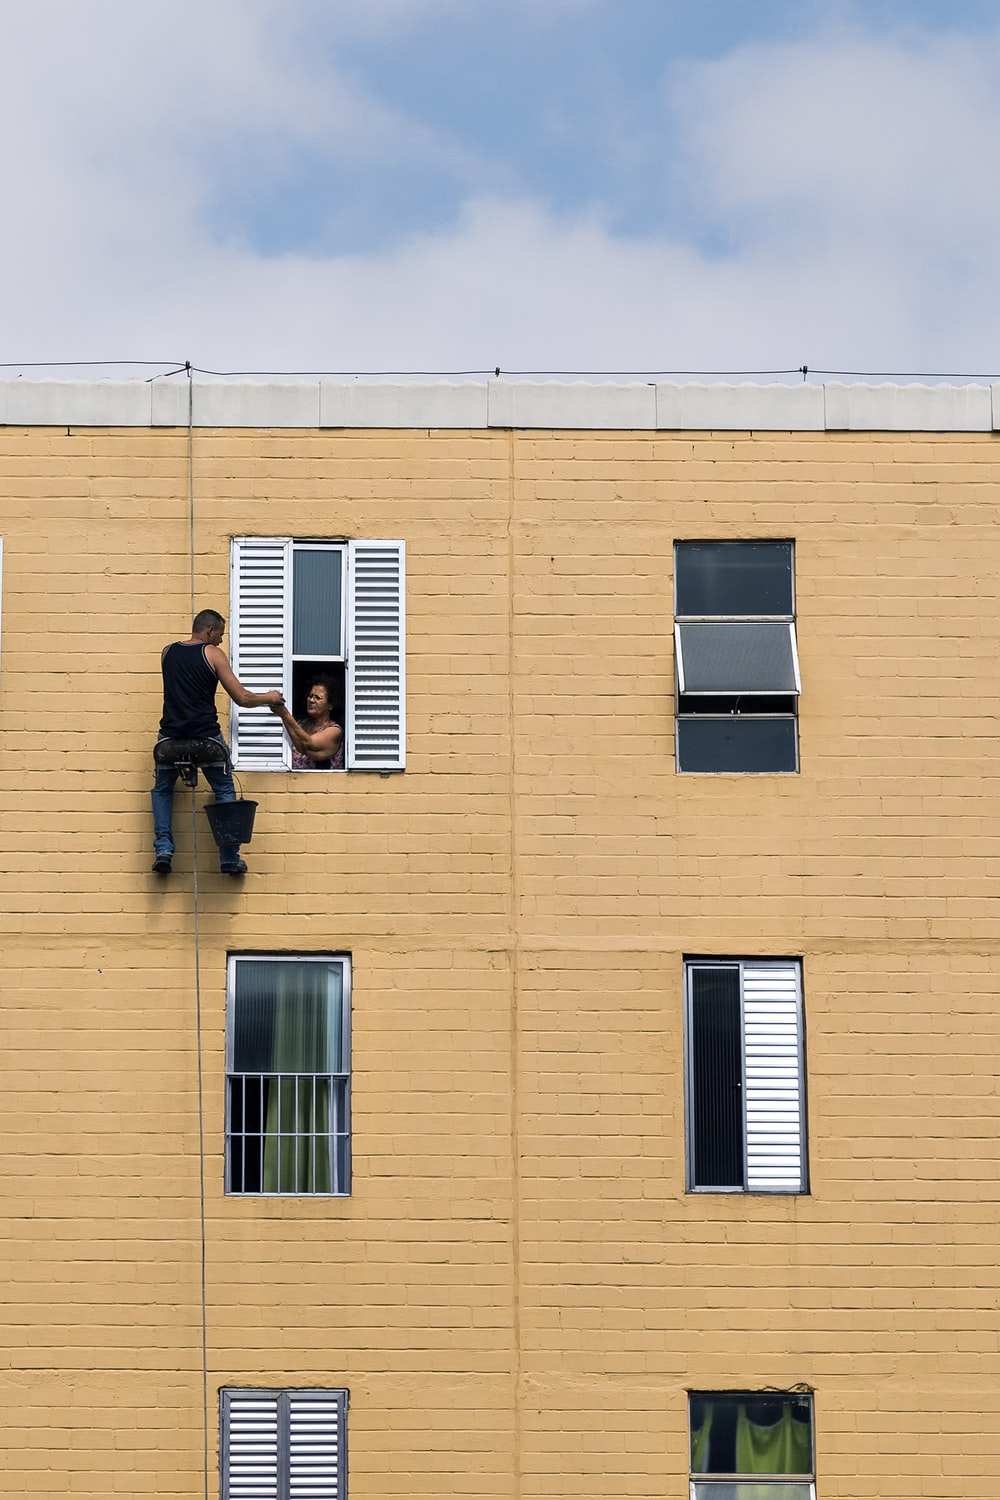 man hanging on building near woman in window during daytime